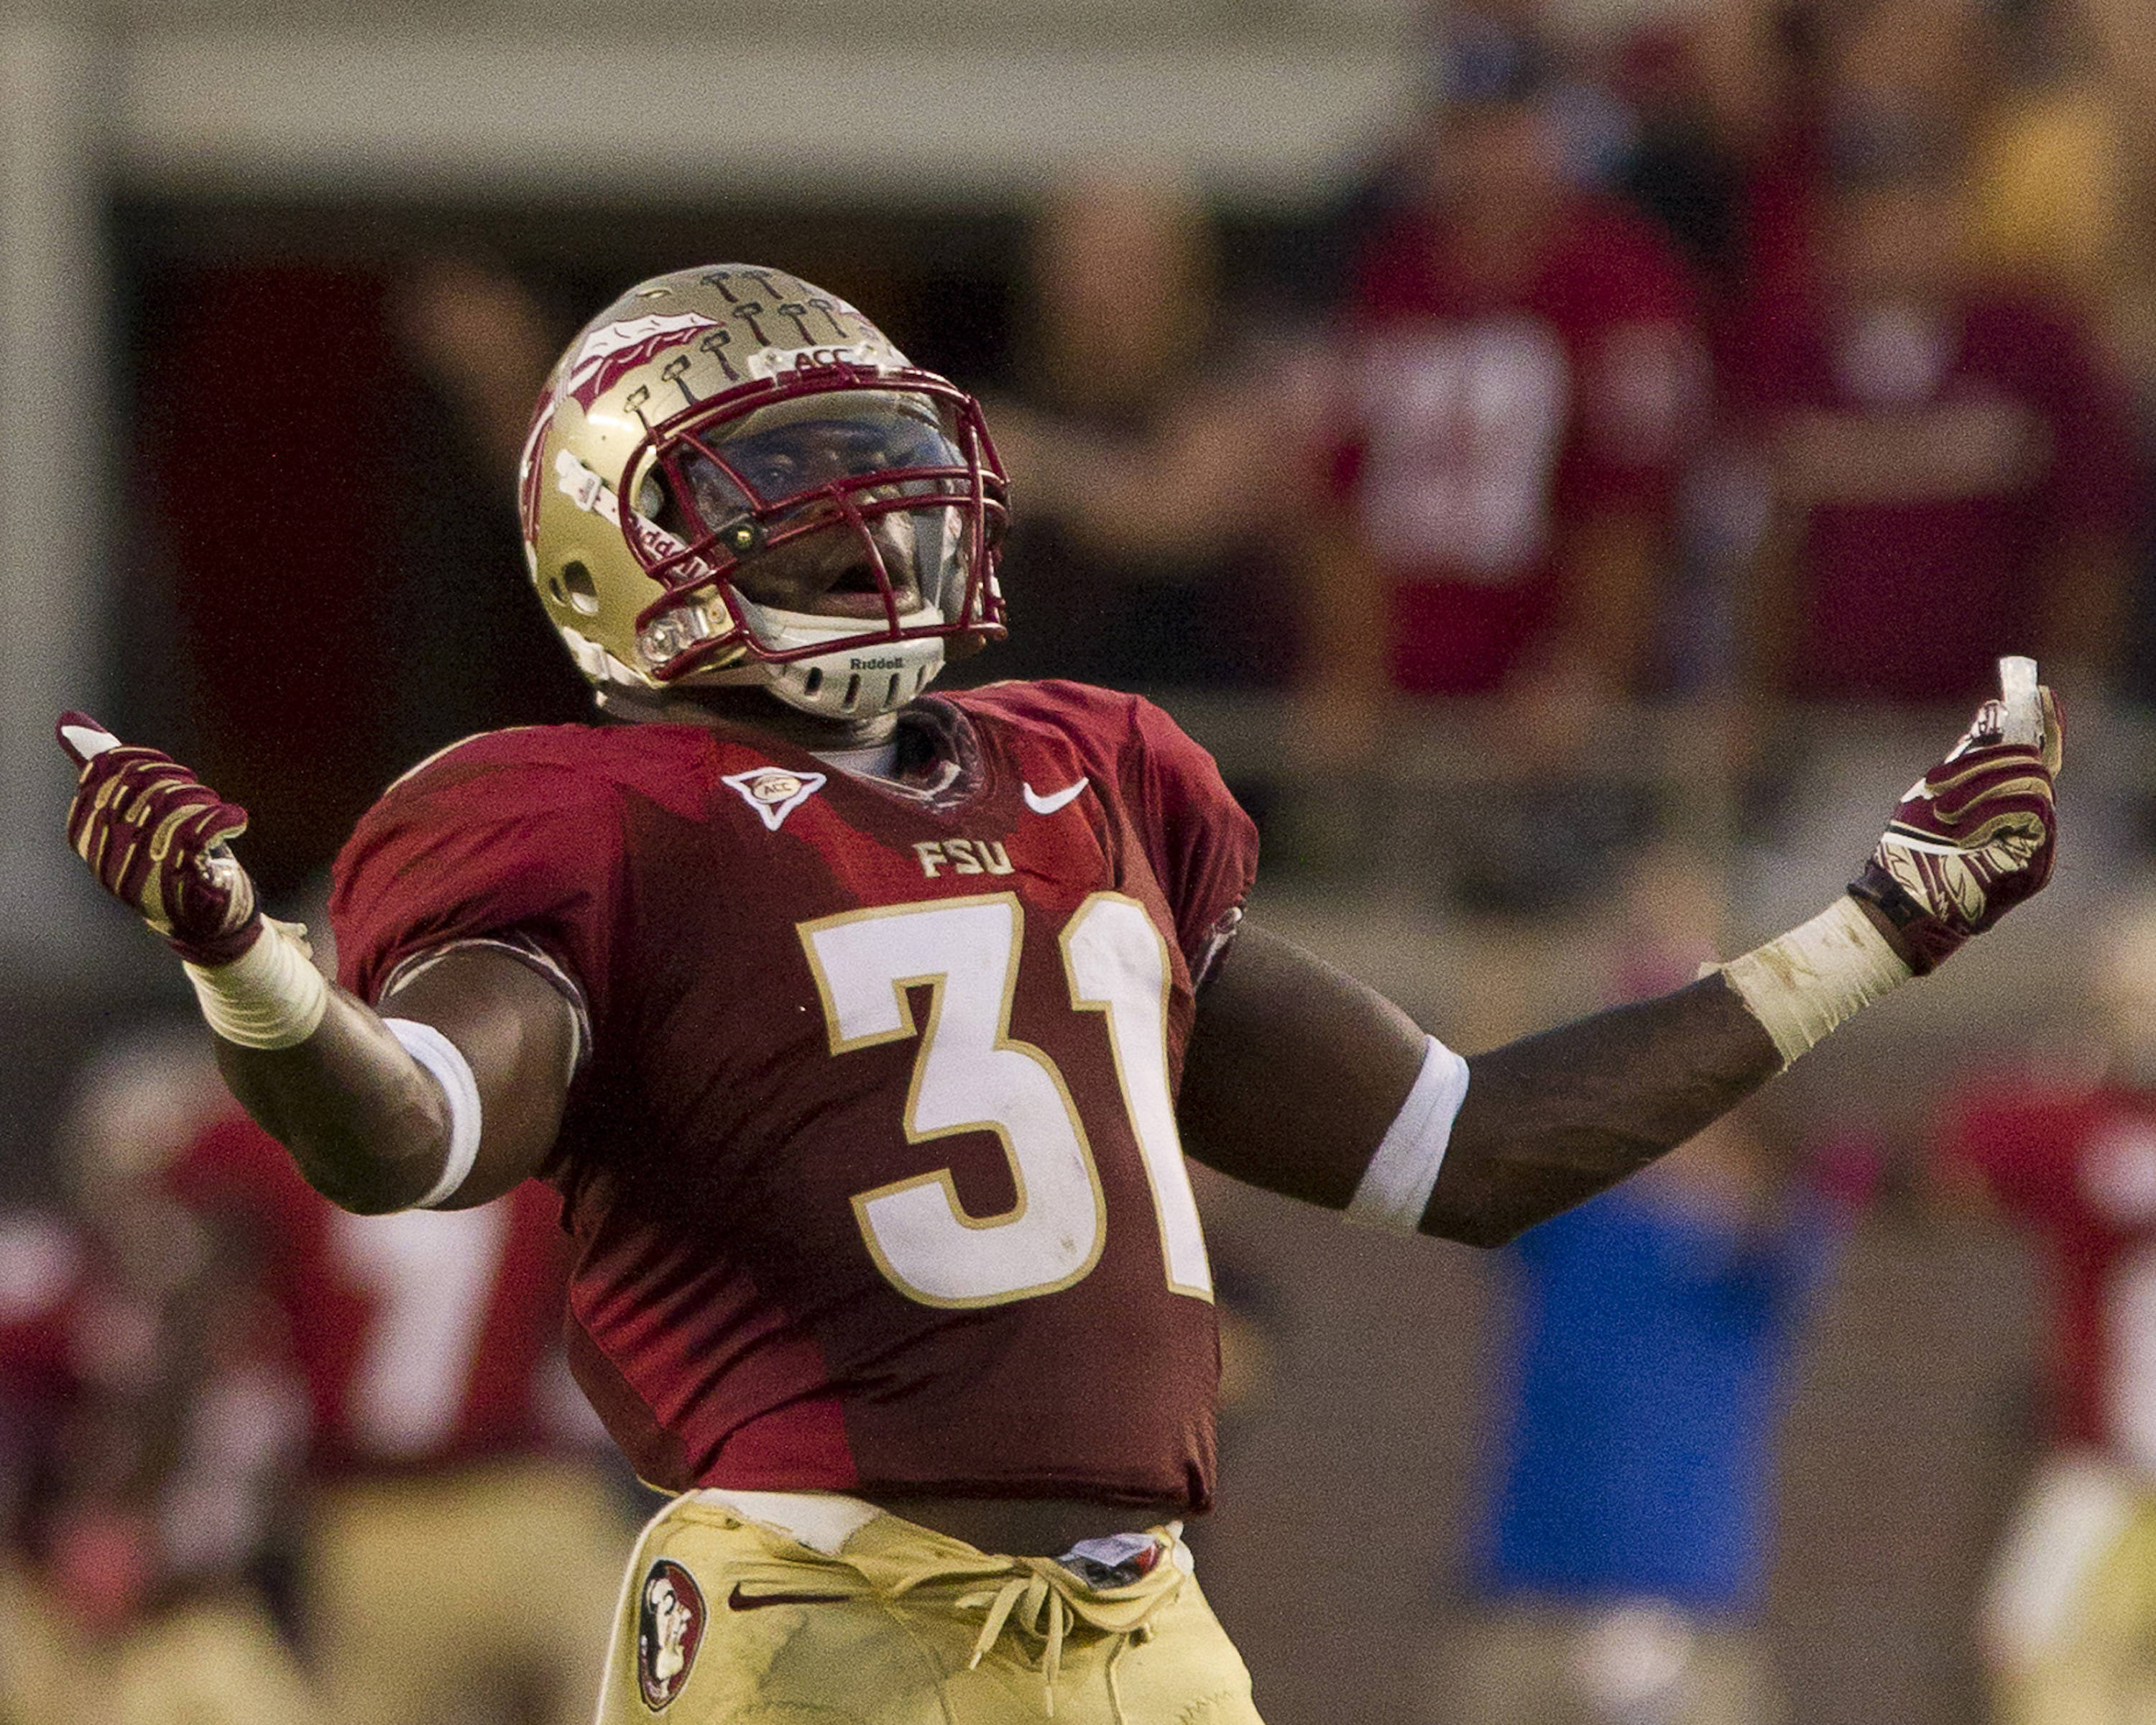 Terrence Brooks (31) celebrates during the FSU vs Boston College football game on October 13, 2012 in Tallahassee, Fla.